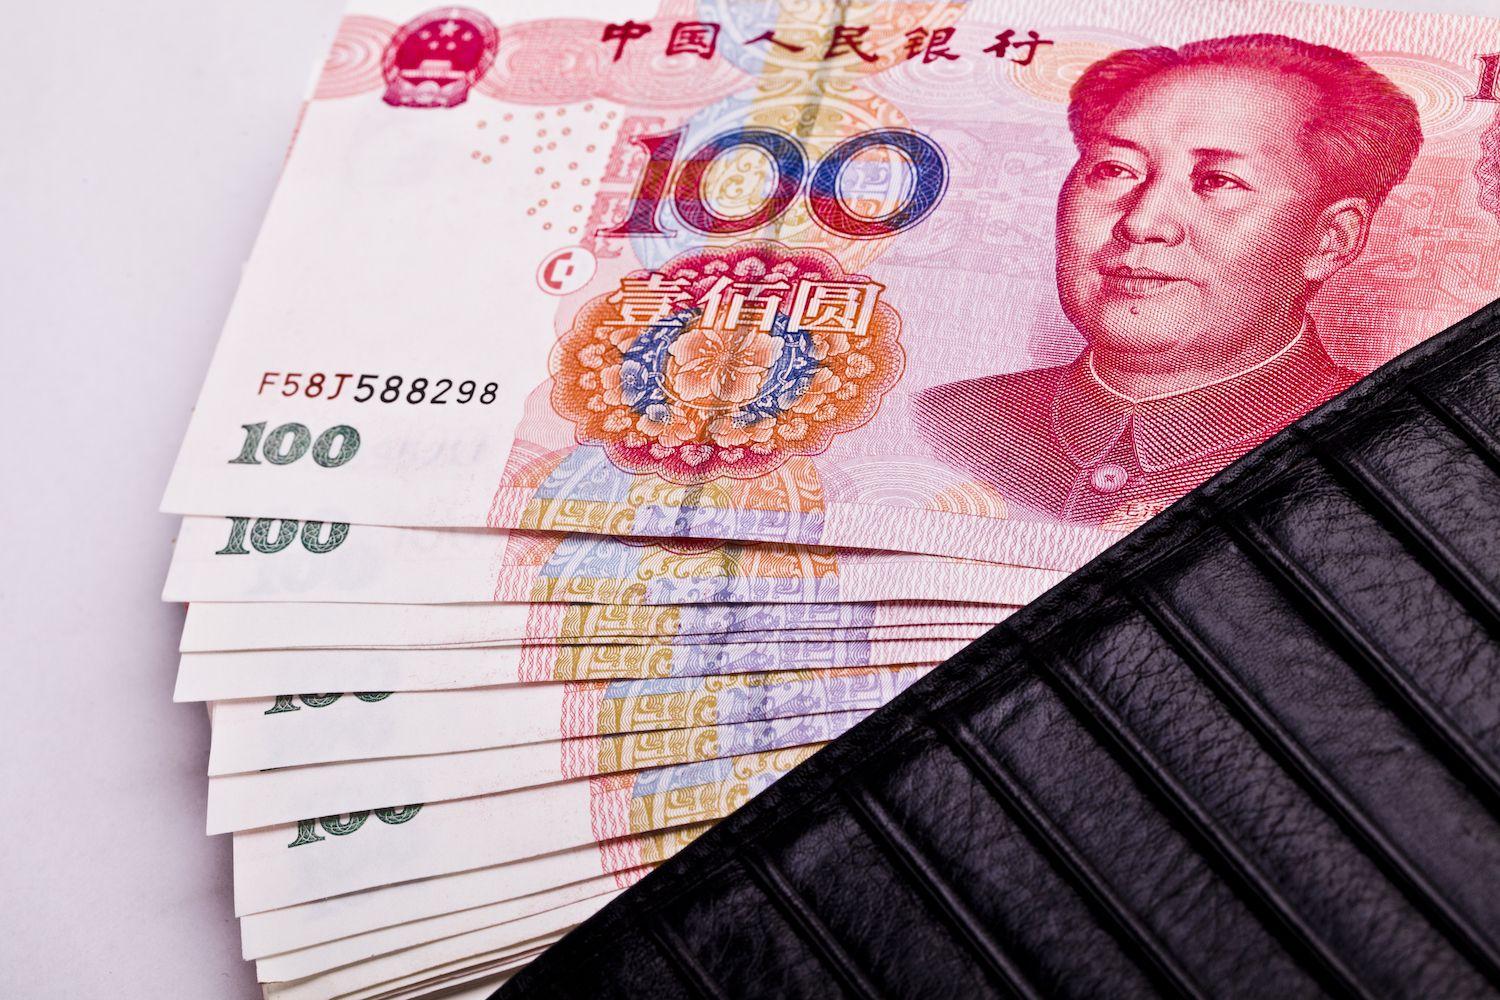 Goldman Sachs Expects Digital Yuan to Reach 1B Users Within 10 Years